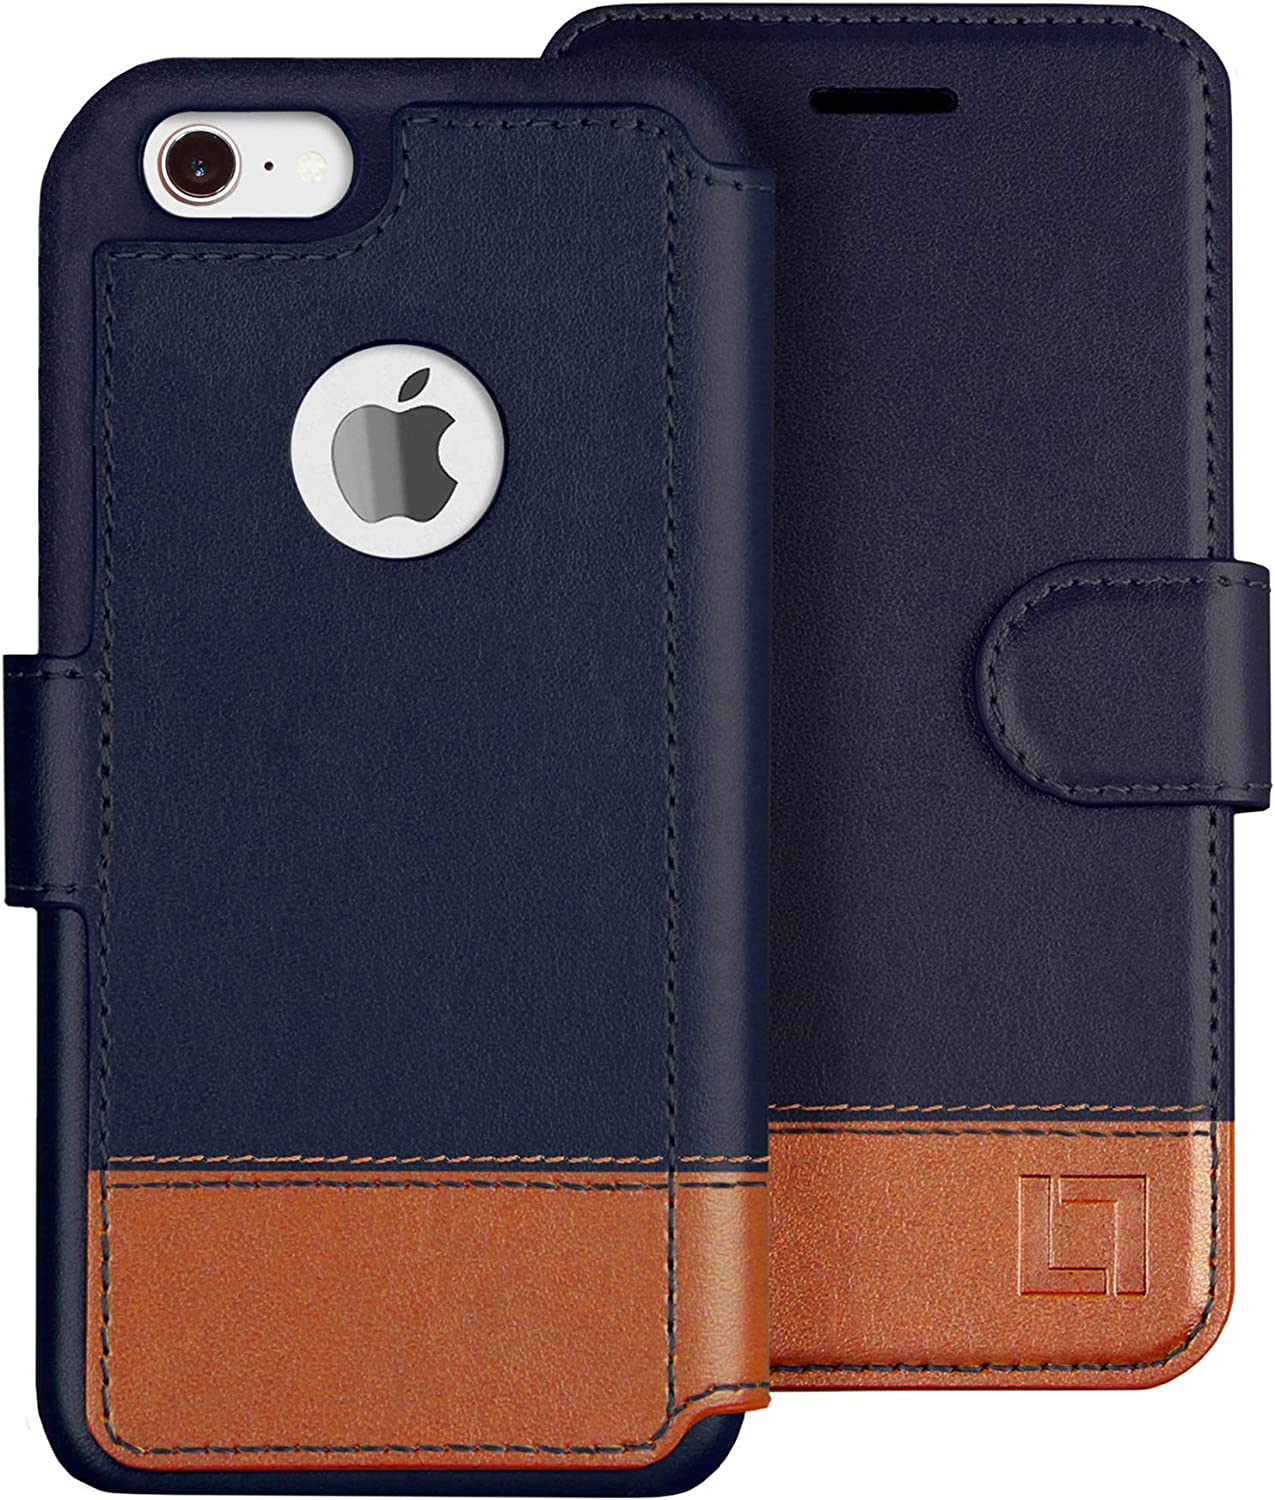 LUPA iPhone 6S plus wallet case, iPhone 6 plus Wallet Case, Durable and Slim, Lightweight with Classic Design & Ultra-Strong Magnetic Closure, Faux Leather, Desert Sky, For Apple iPhone 6s plus/6 plus